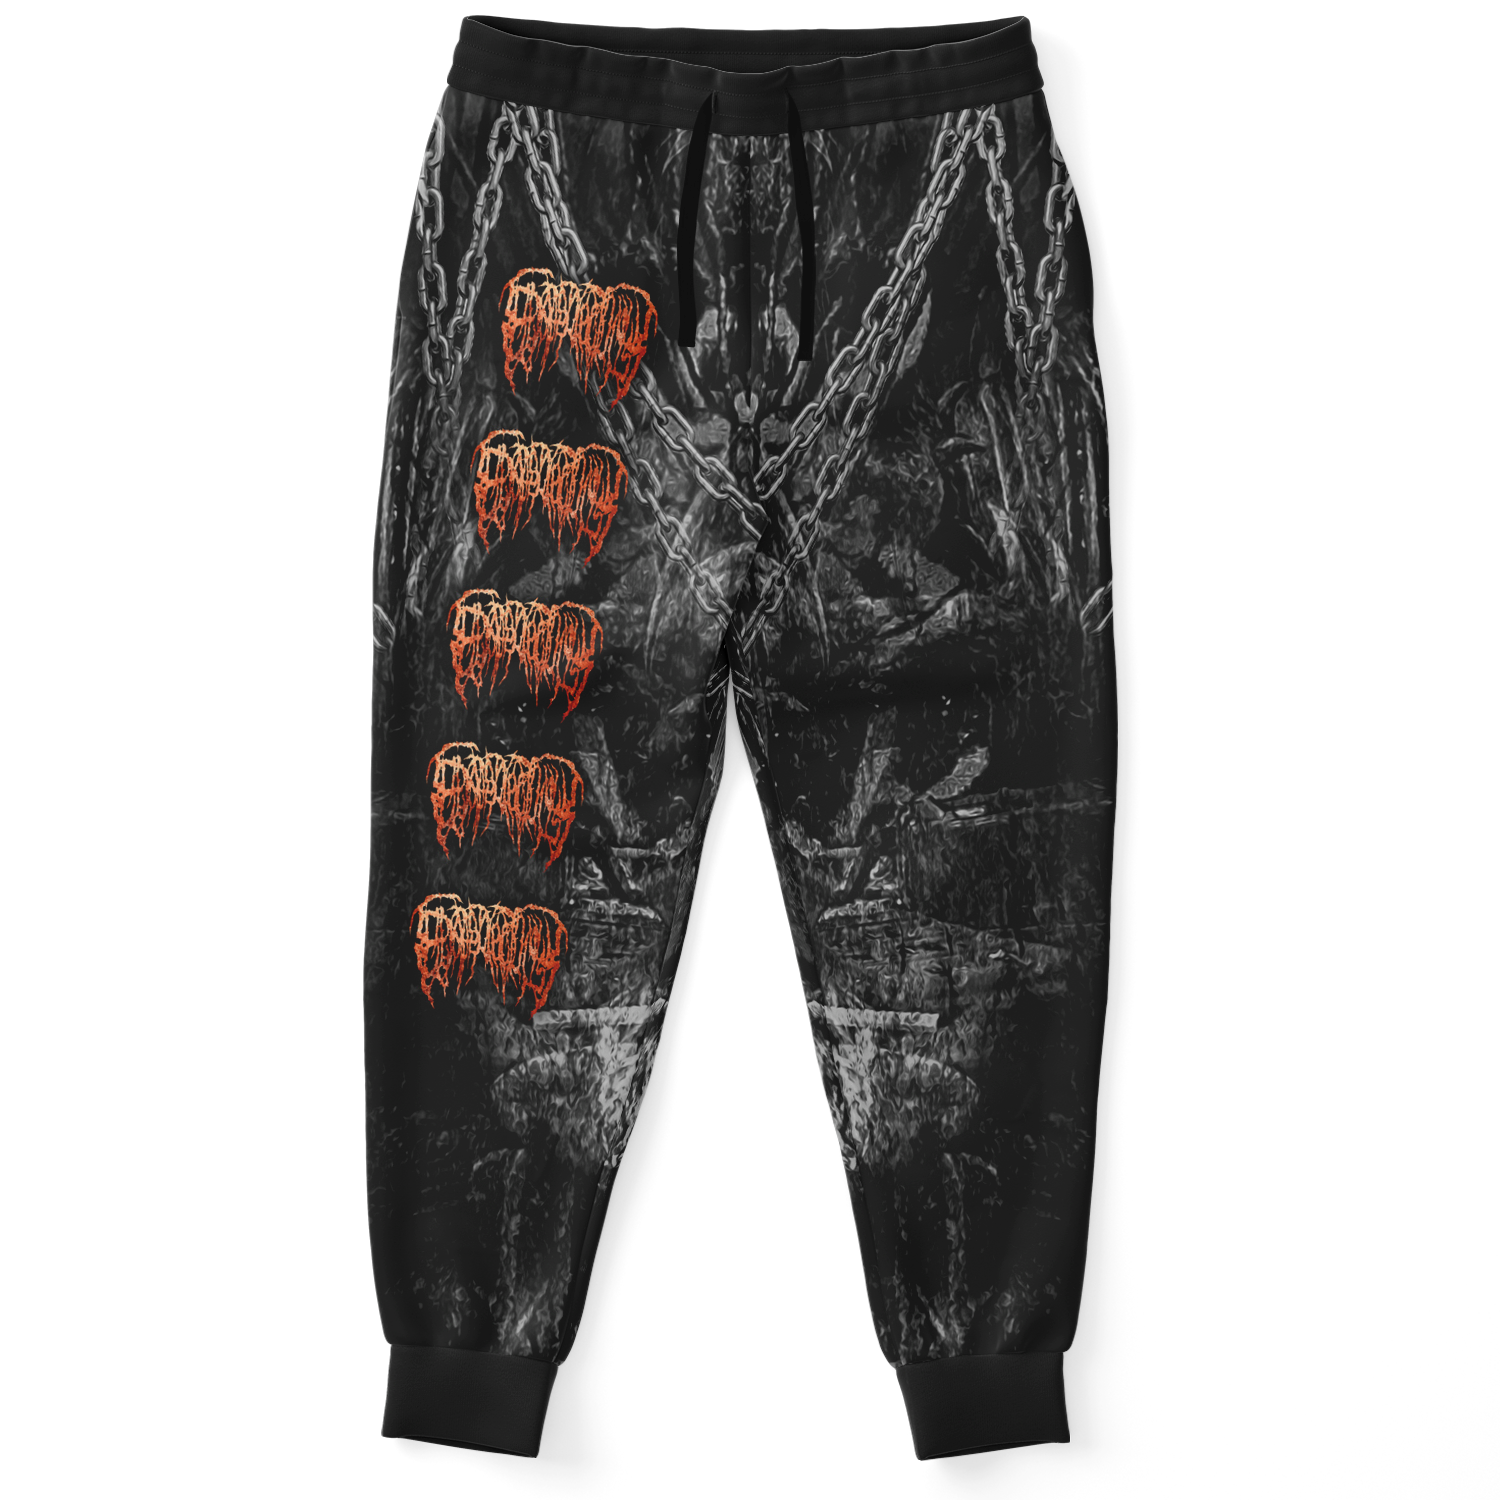 Officially Licensed Epicardiectomy - Abhorrent Stench of Posthumous Gastrorectal Desecration Joggers